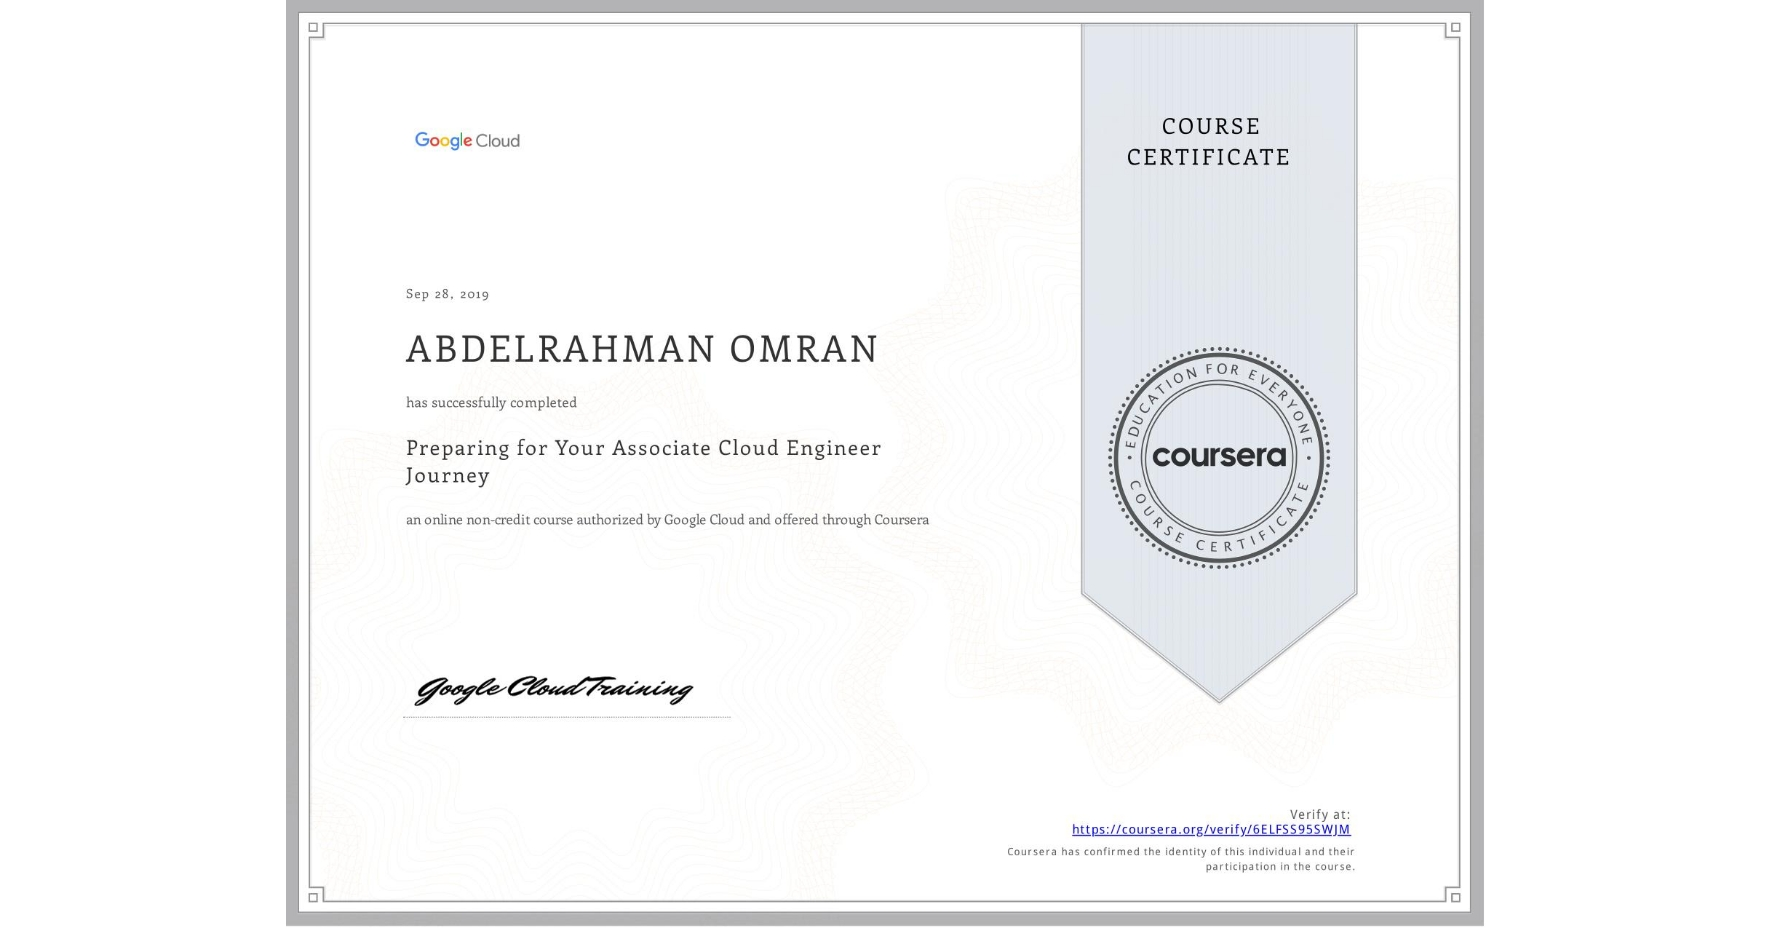 View certificate for ABDELRAHMAN OMRAN, Preparing for the Google Cloud Associate Cloud Engineer Exam, an online non-credit course authorized by Google Cloud and offered through Coursera